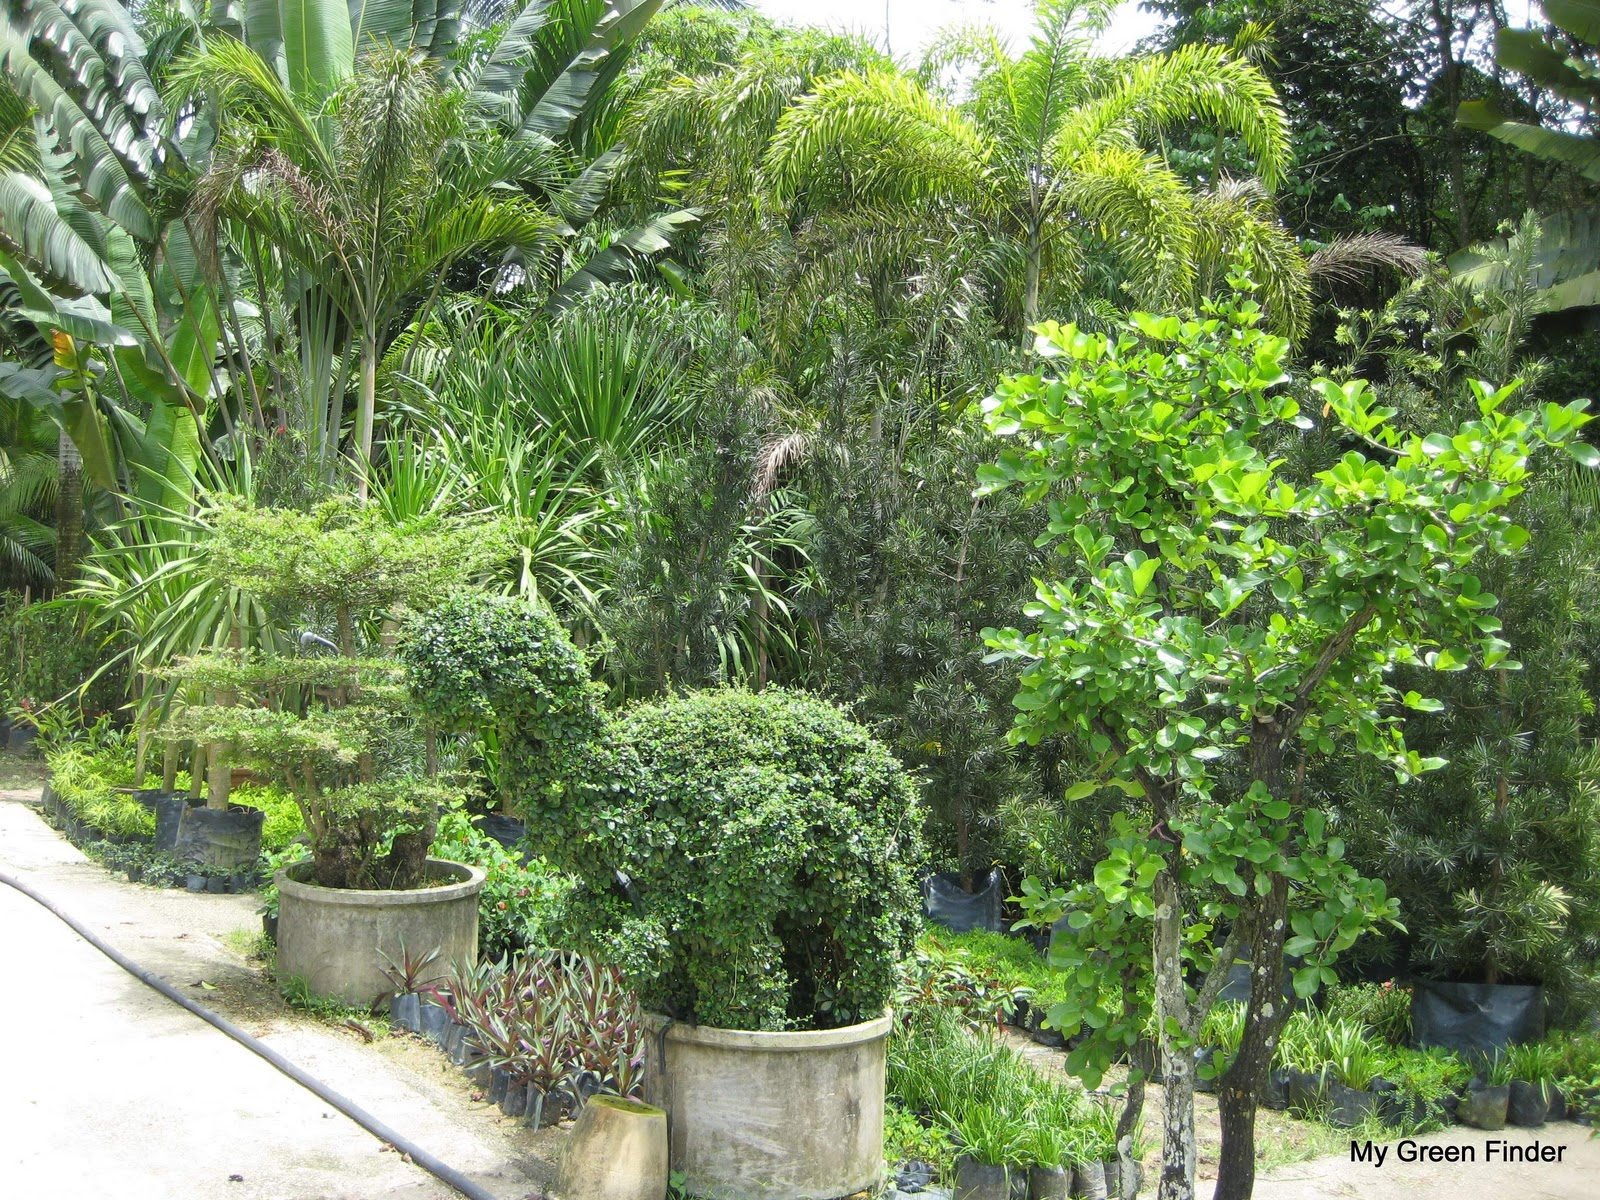 MY GREEN FINDER | Plant Vendors: SMM Landscape Sdn Bhd